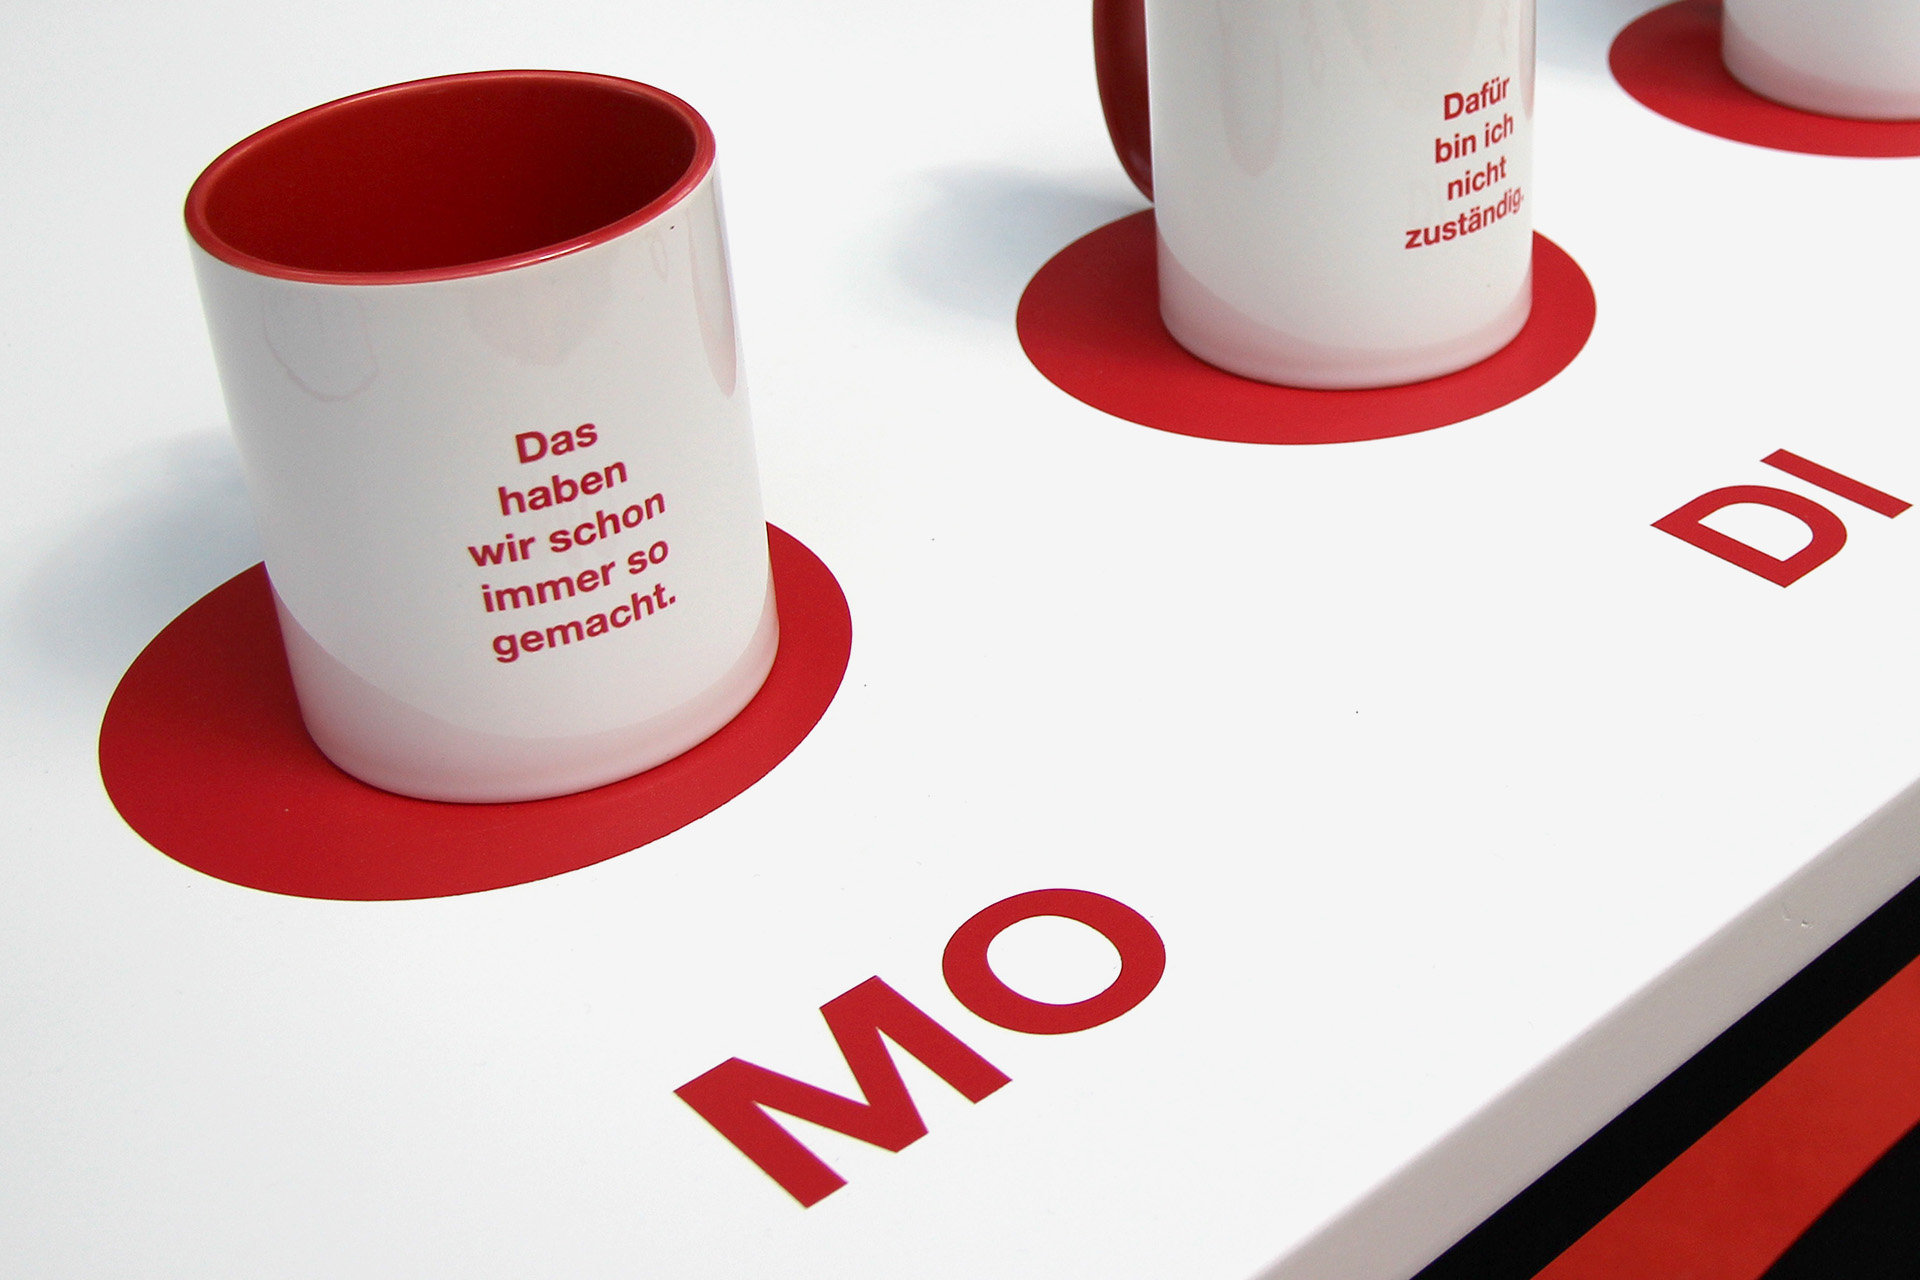 For each weekday a white-red cup with text print of an outdated way of thinking